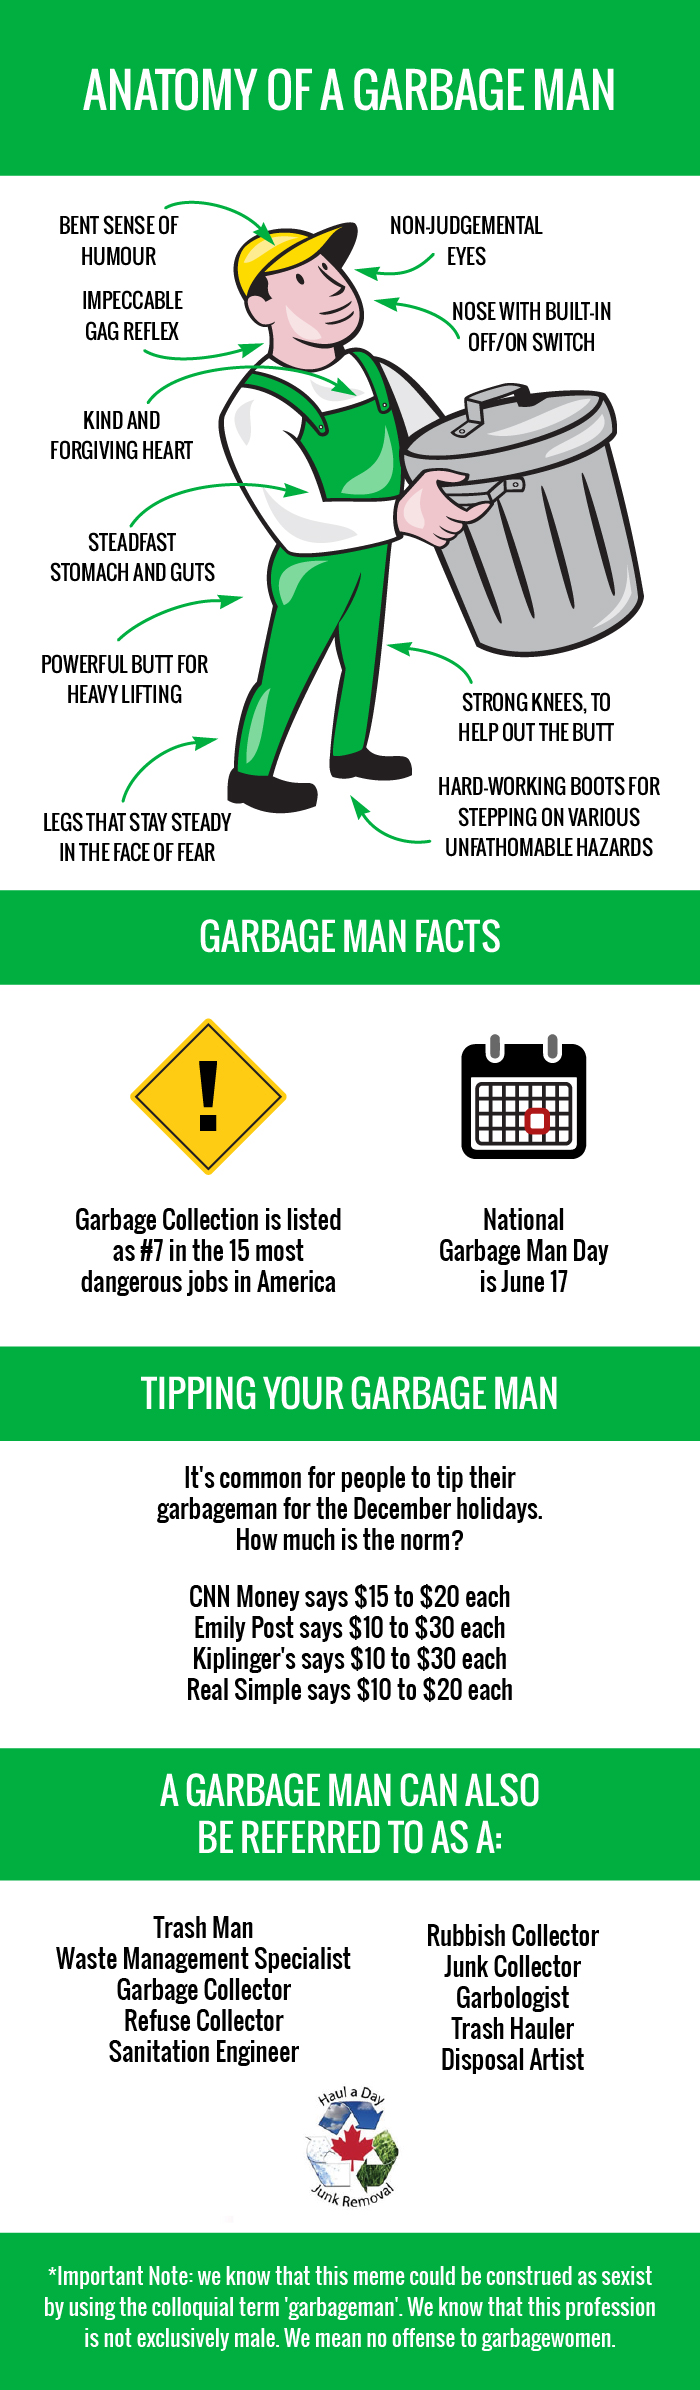 Anatomy-of-a-Garbage-Man